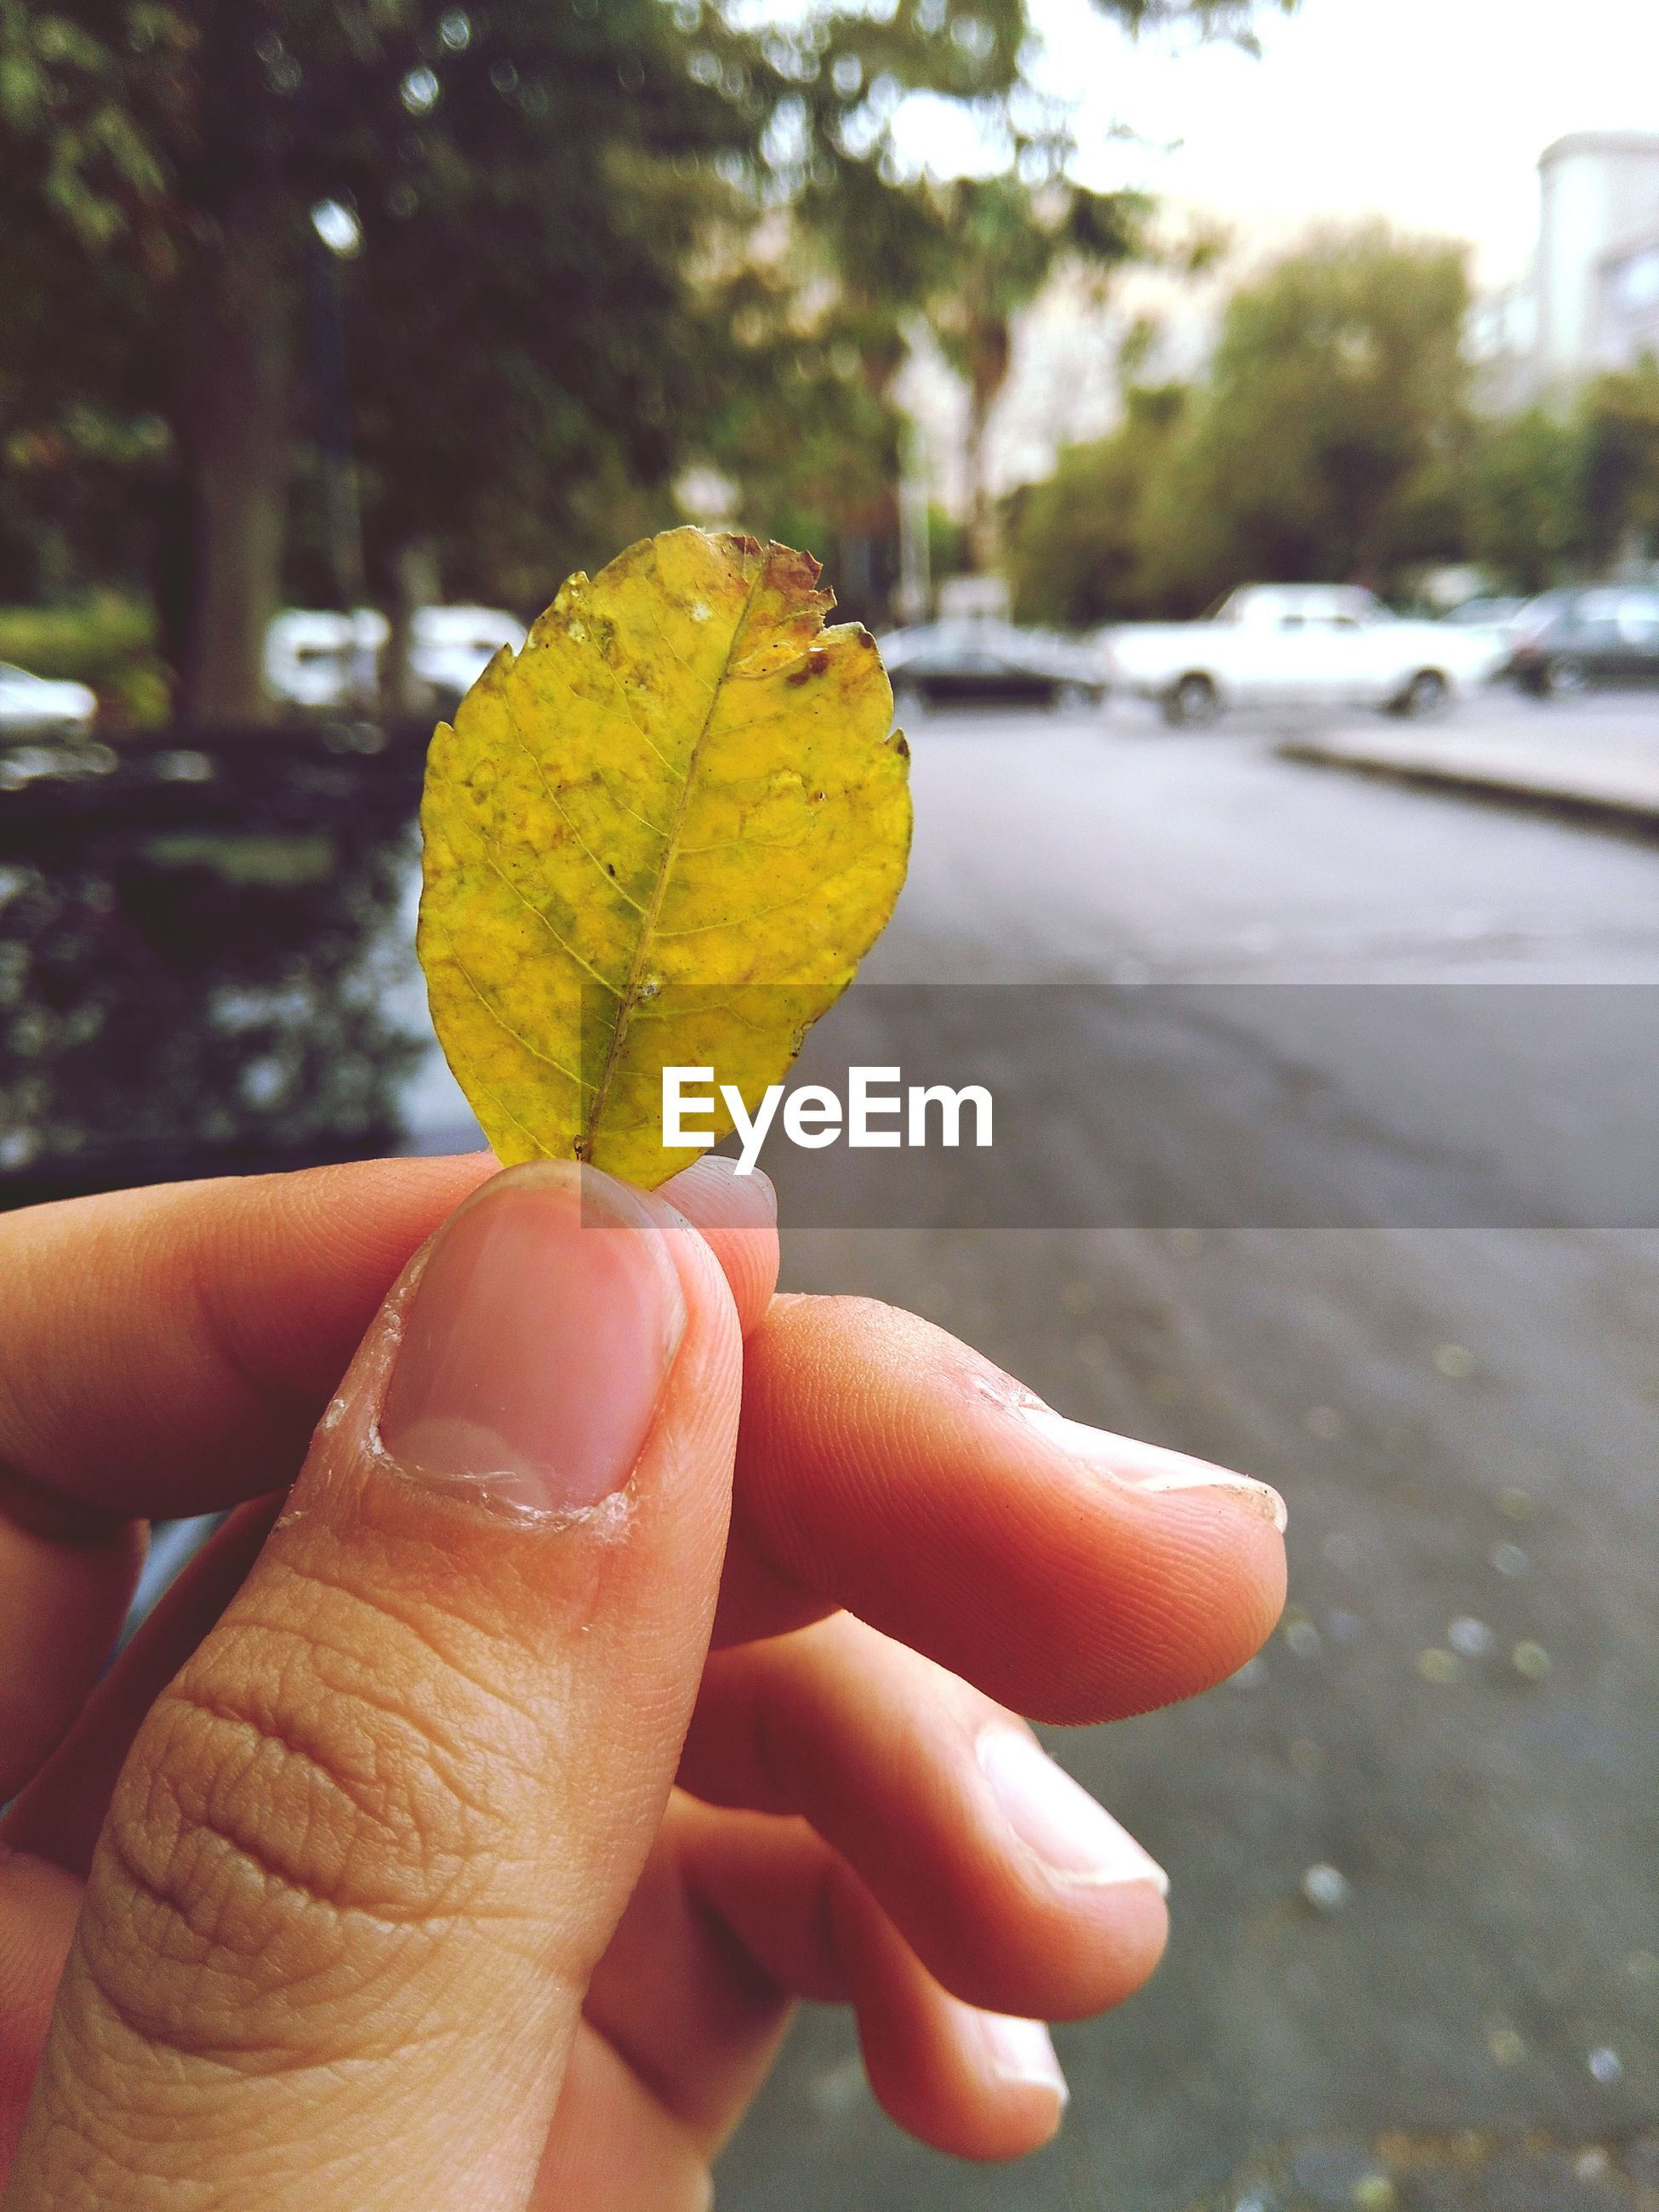 human hand, human body part, one person, focus on foreground, outdoors, personal perspective, holding, real people, fruit, day, close-up, autumn, road, nature, tree, food, people